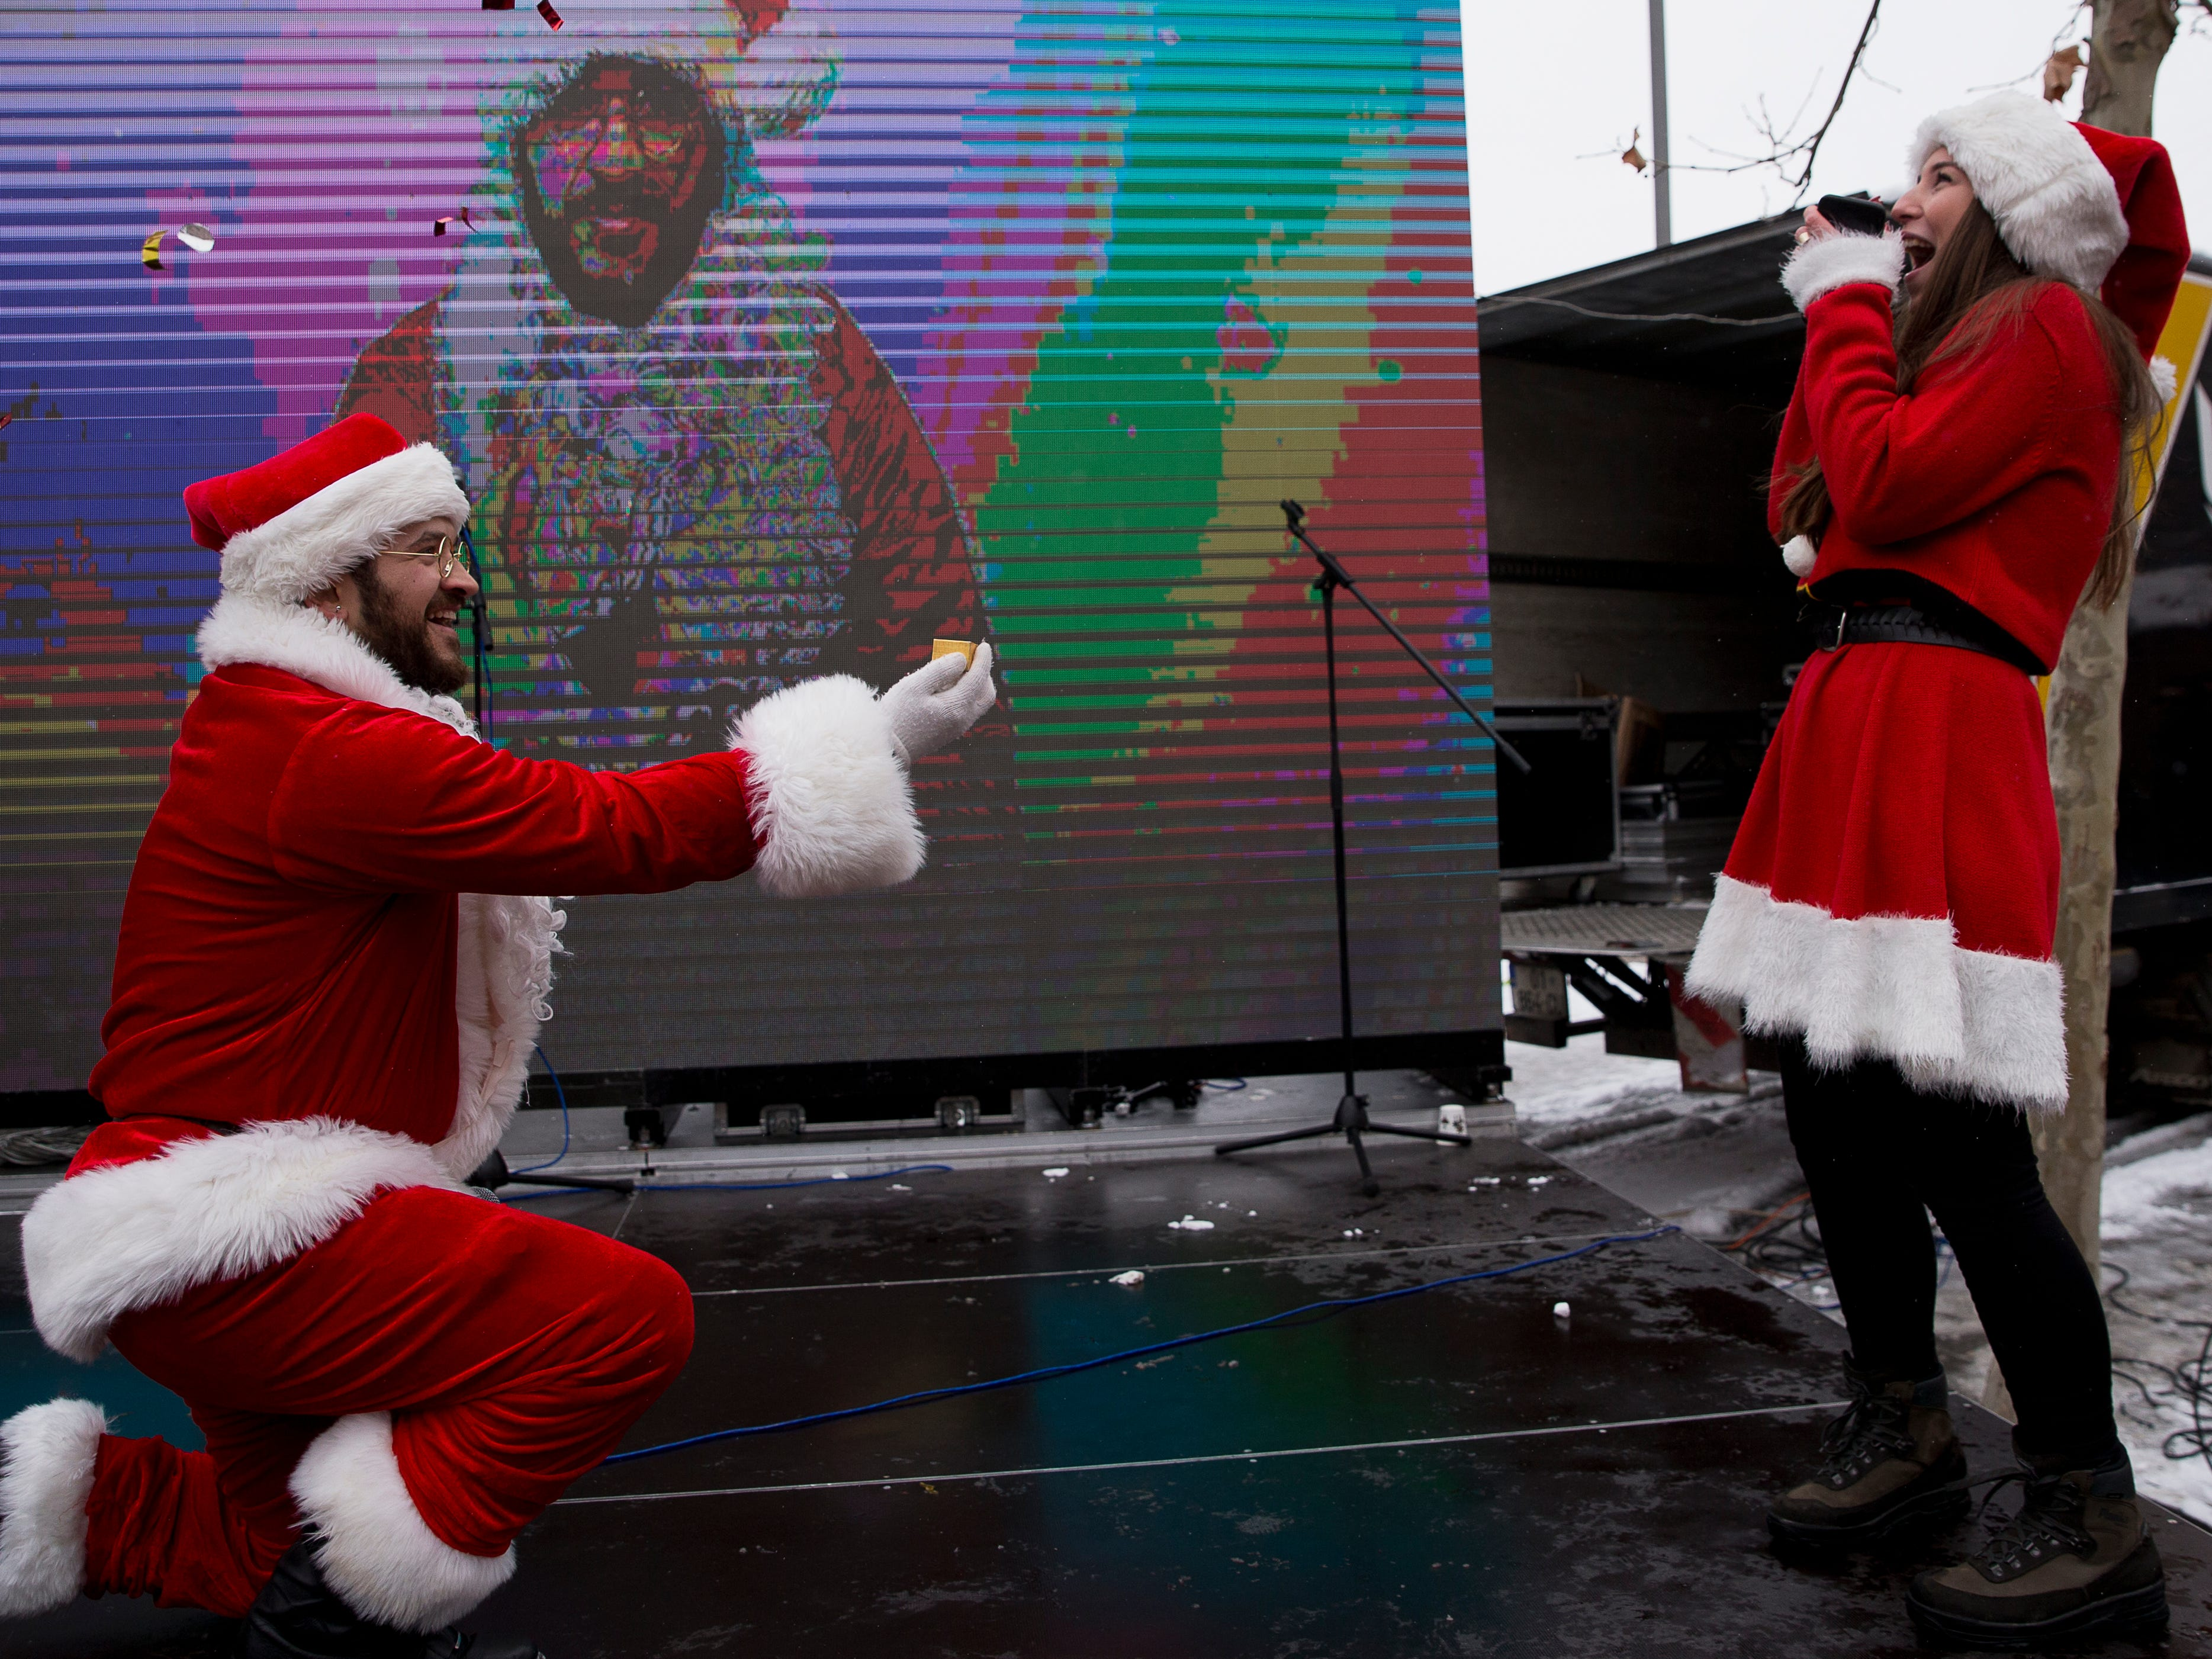 Jusuf Islami proposes to his partner Hana participating in the third Santa Claus run in Kosovo capital Pristina on Sunday, Dec. 16, 2018. Hundreds runners participated in a charity Santa Claus race to raise funds for families in need in Kosovo.